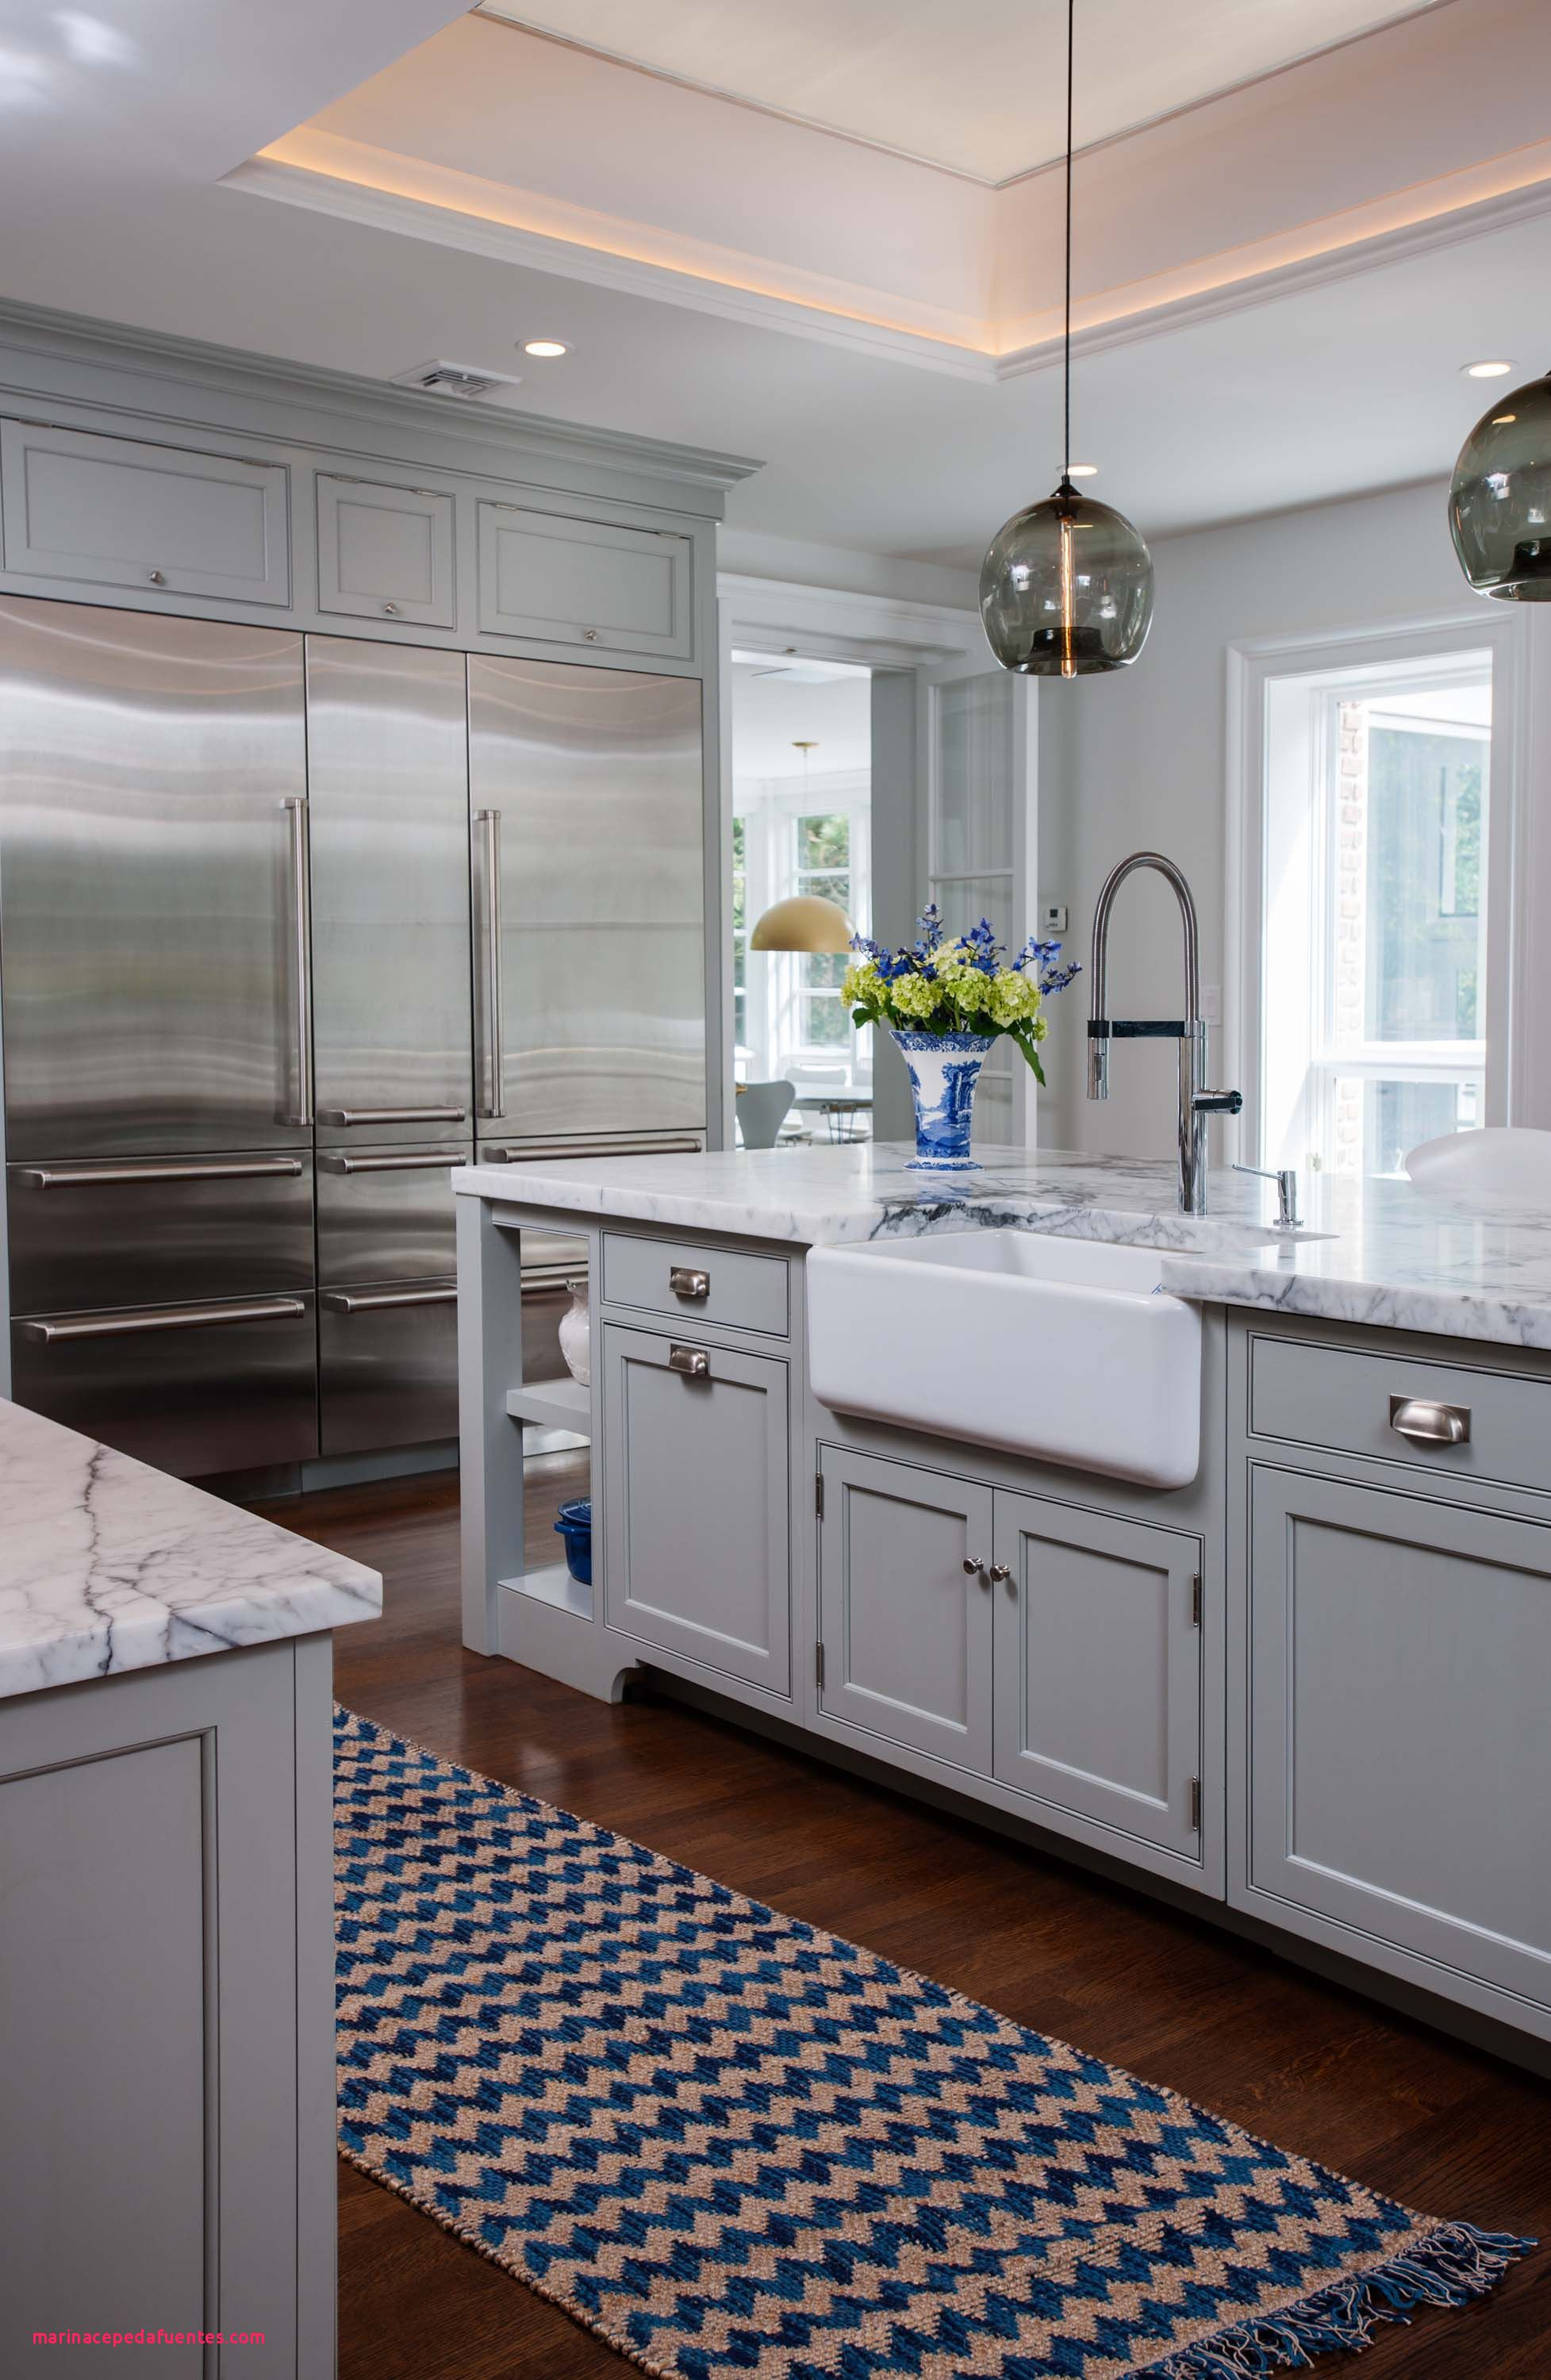 Image result for ellie gray sherwin williams kitchen